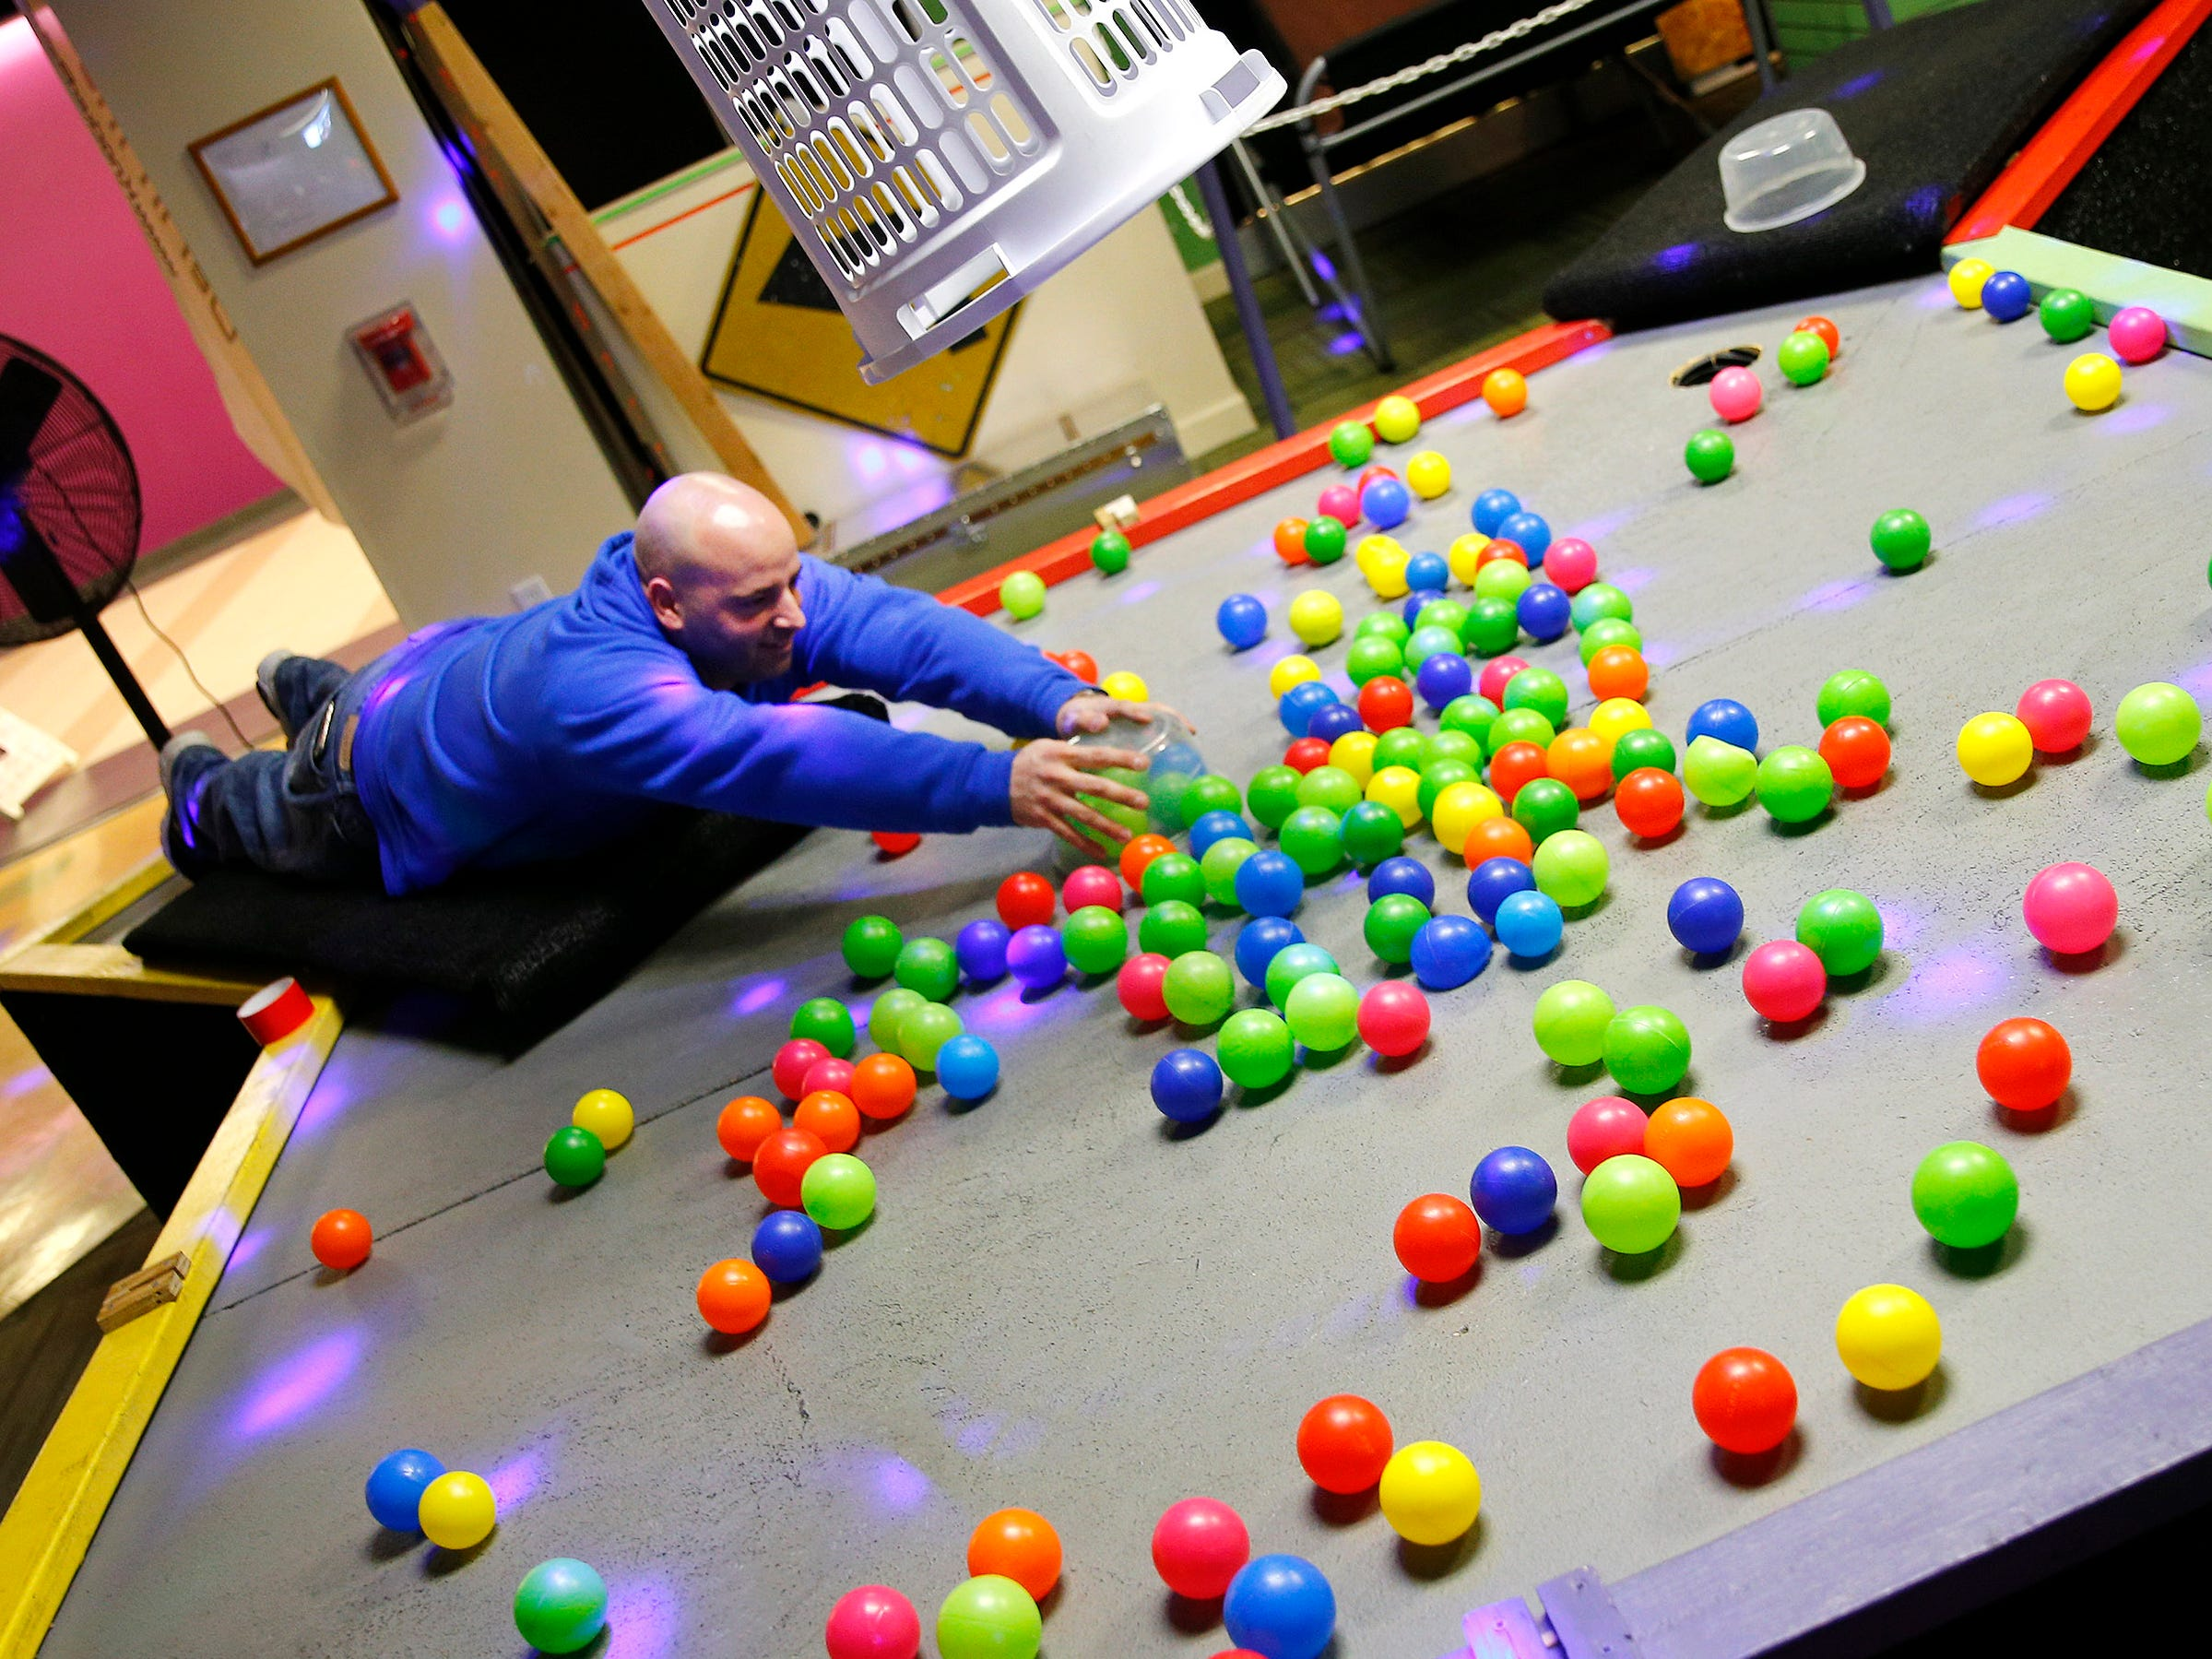 """""""Knockerball & More"""" co-owner Mike Cannizzaro demonstrates the """"Hungry, Hungry Human"""" game at the Monmouth Mall facility in Eatontown Tuesday, January 22, 2019."""